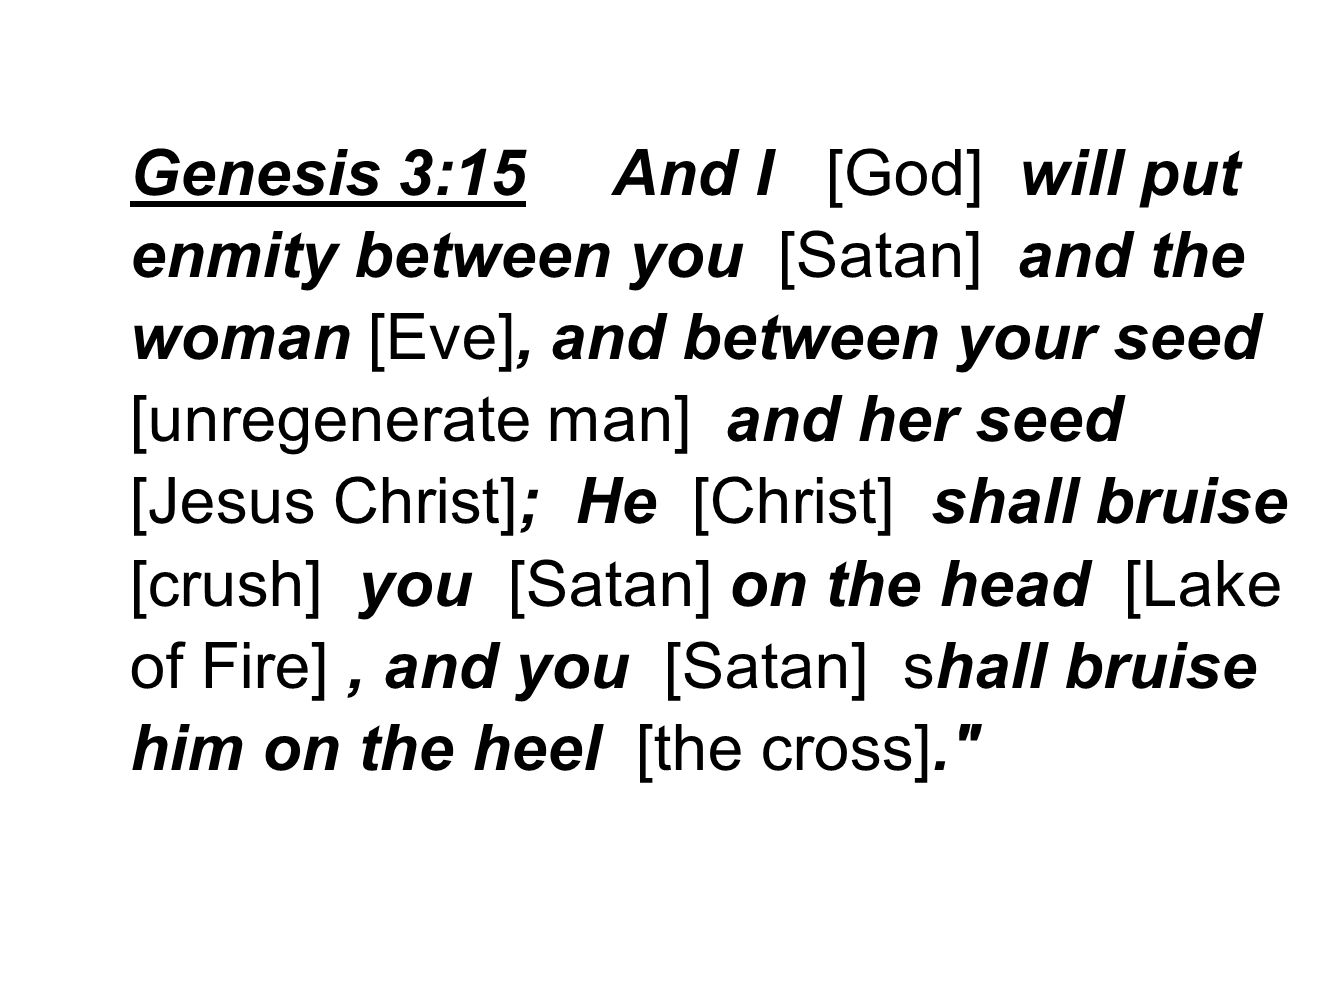 Genesis 3:15 And I [God] will put enmity between you [Satan] and the woman [Eve], and between your seed [unregenerate man] and her seed [Jesus Christ]; He [Christ] shall bruise [crush] you [Satan] on the head [Lake of Fire], and you [Satan] shall bruise him on the heel [the cross].